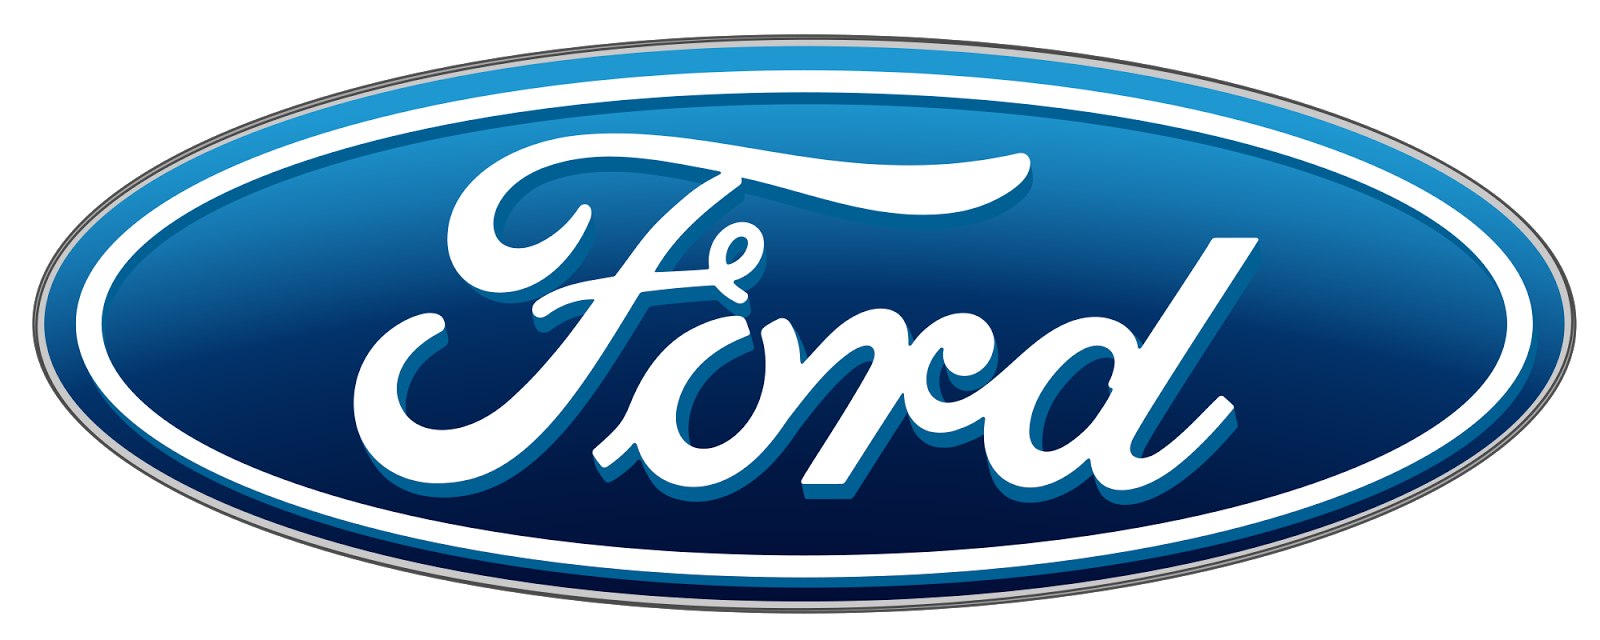 Annsley Merelle Ward Brics Toyota Lucida Fuse Box English Ford In Hot Water Over Alleged Trade Secret Misuse Versata A Texas Based Software Company Has Commenced 1 Billion Lawsuit Alleging That